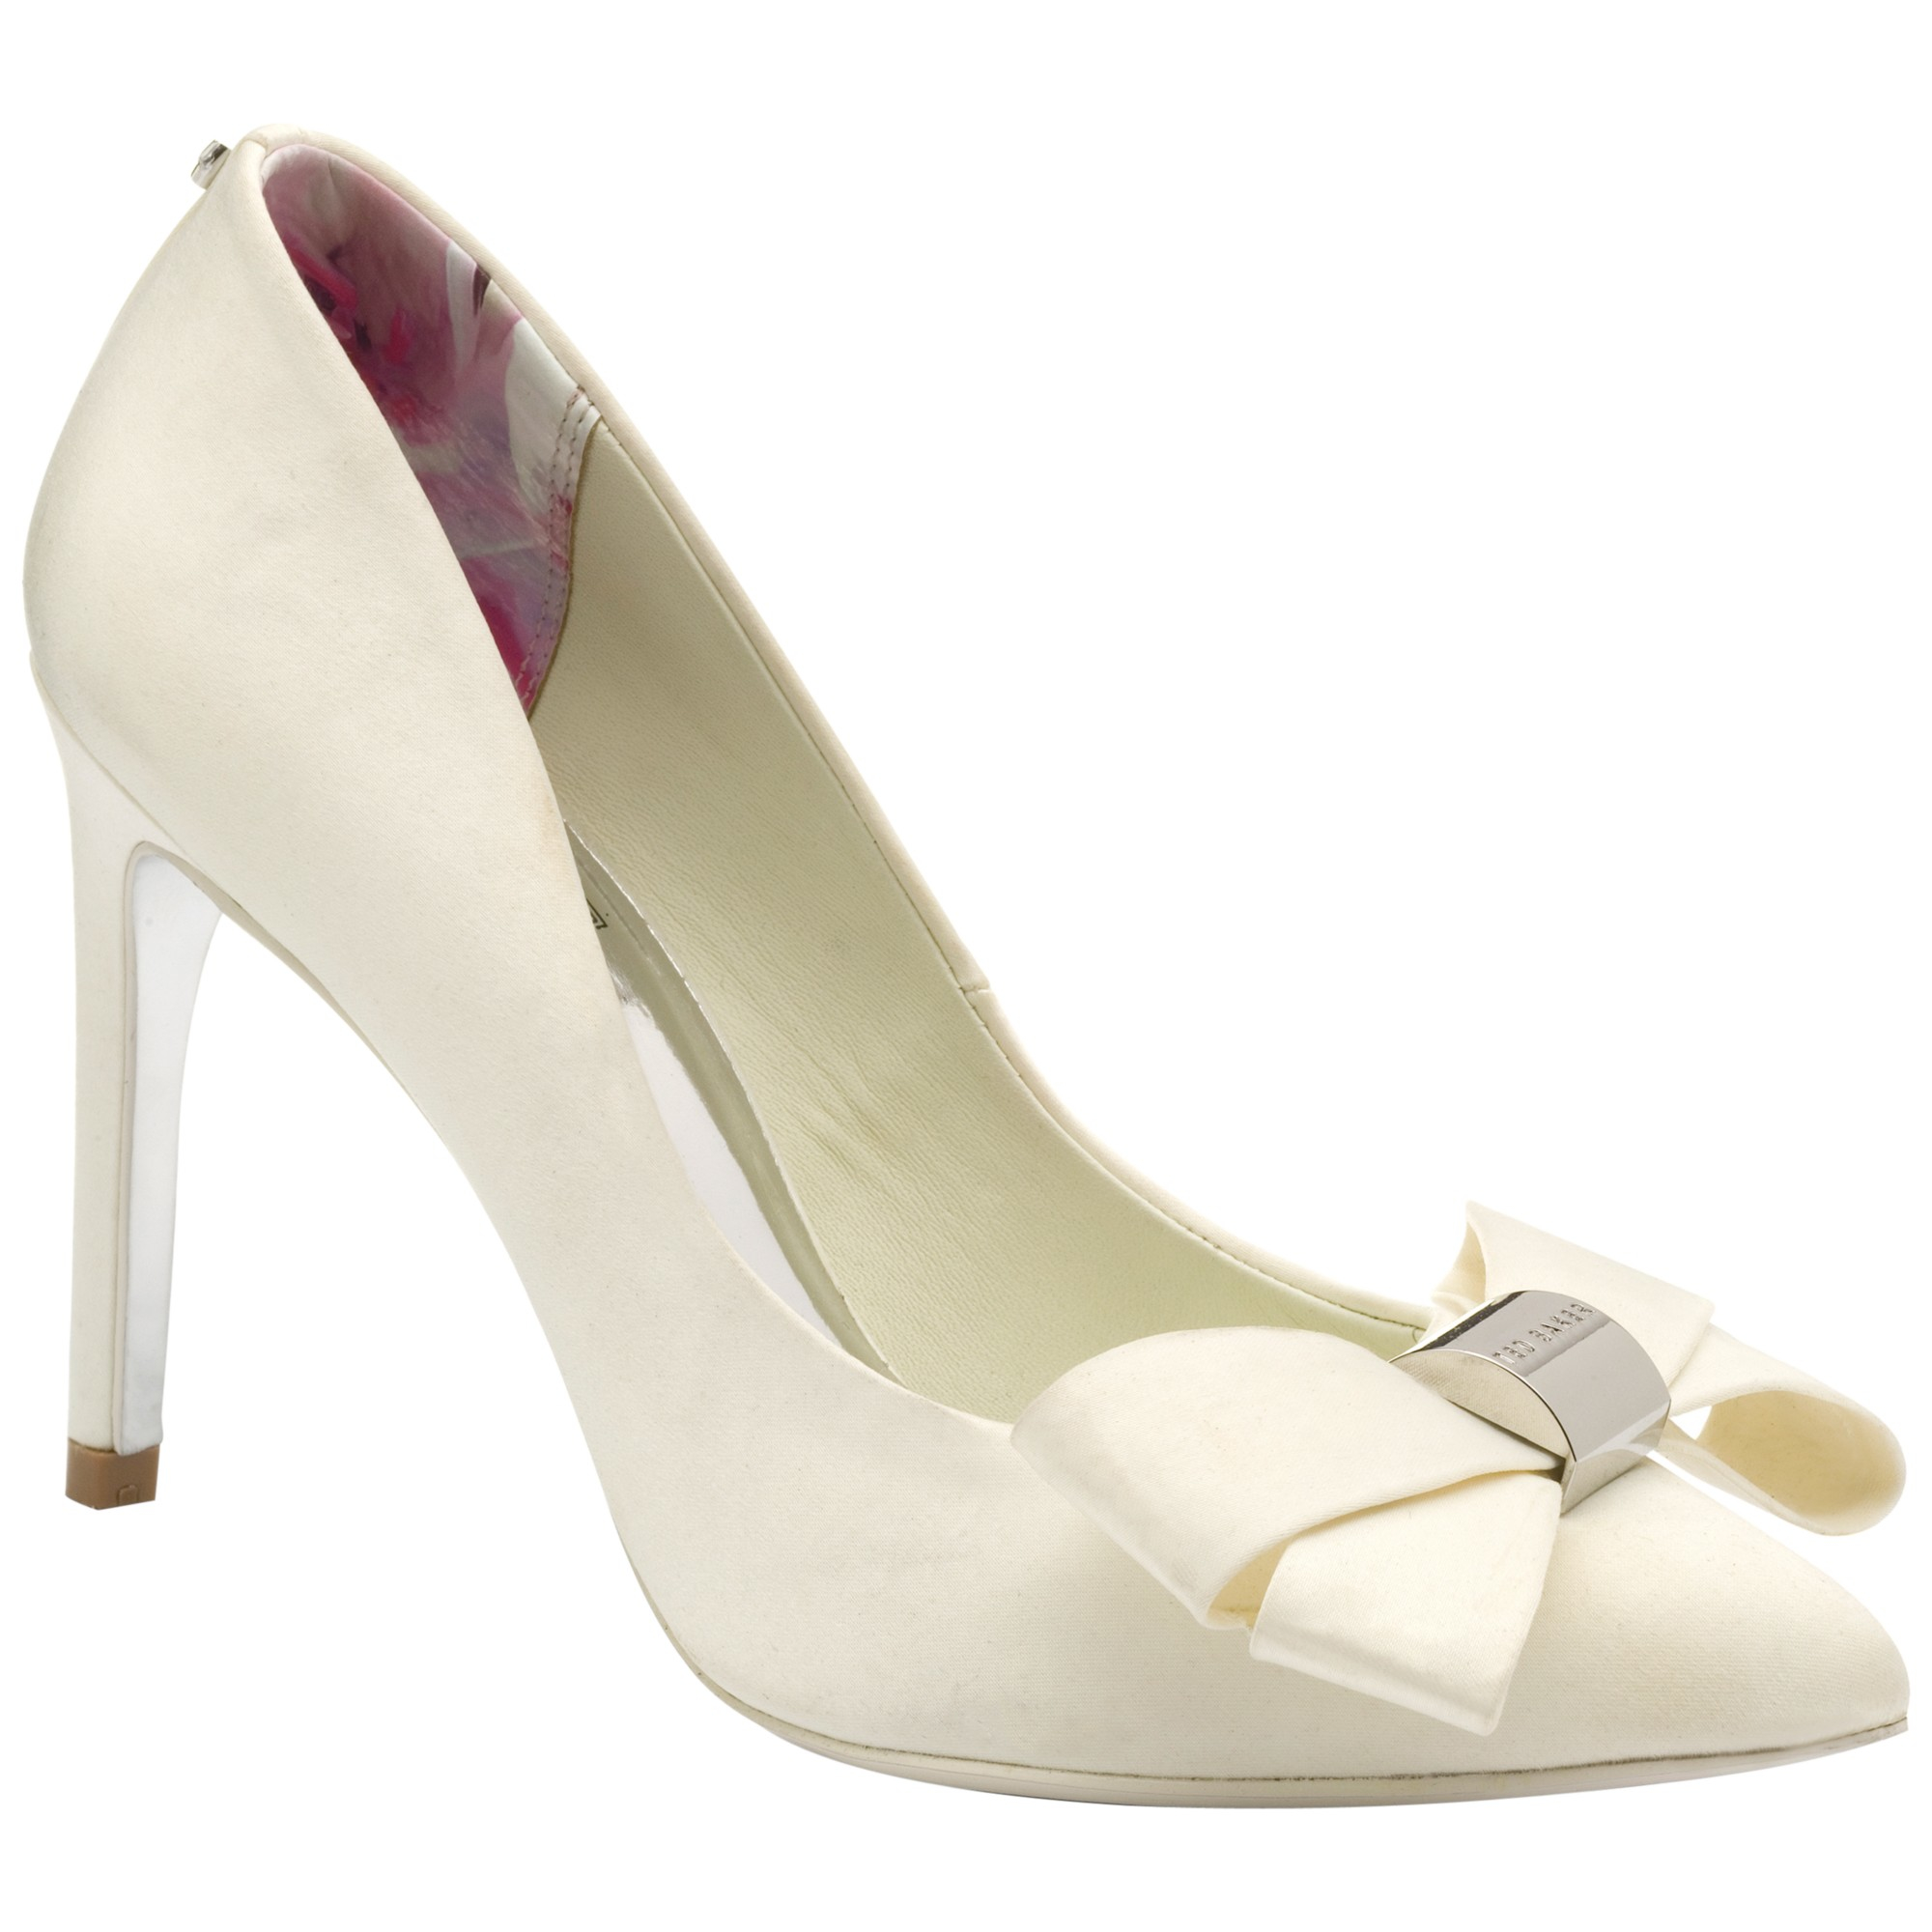 Ted Baker Bridal Shoes Uk